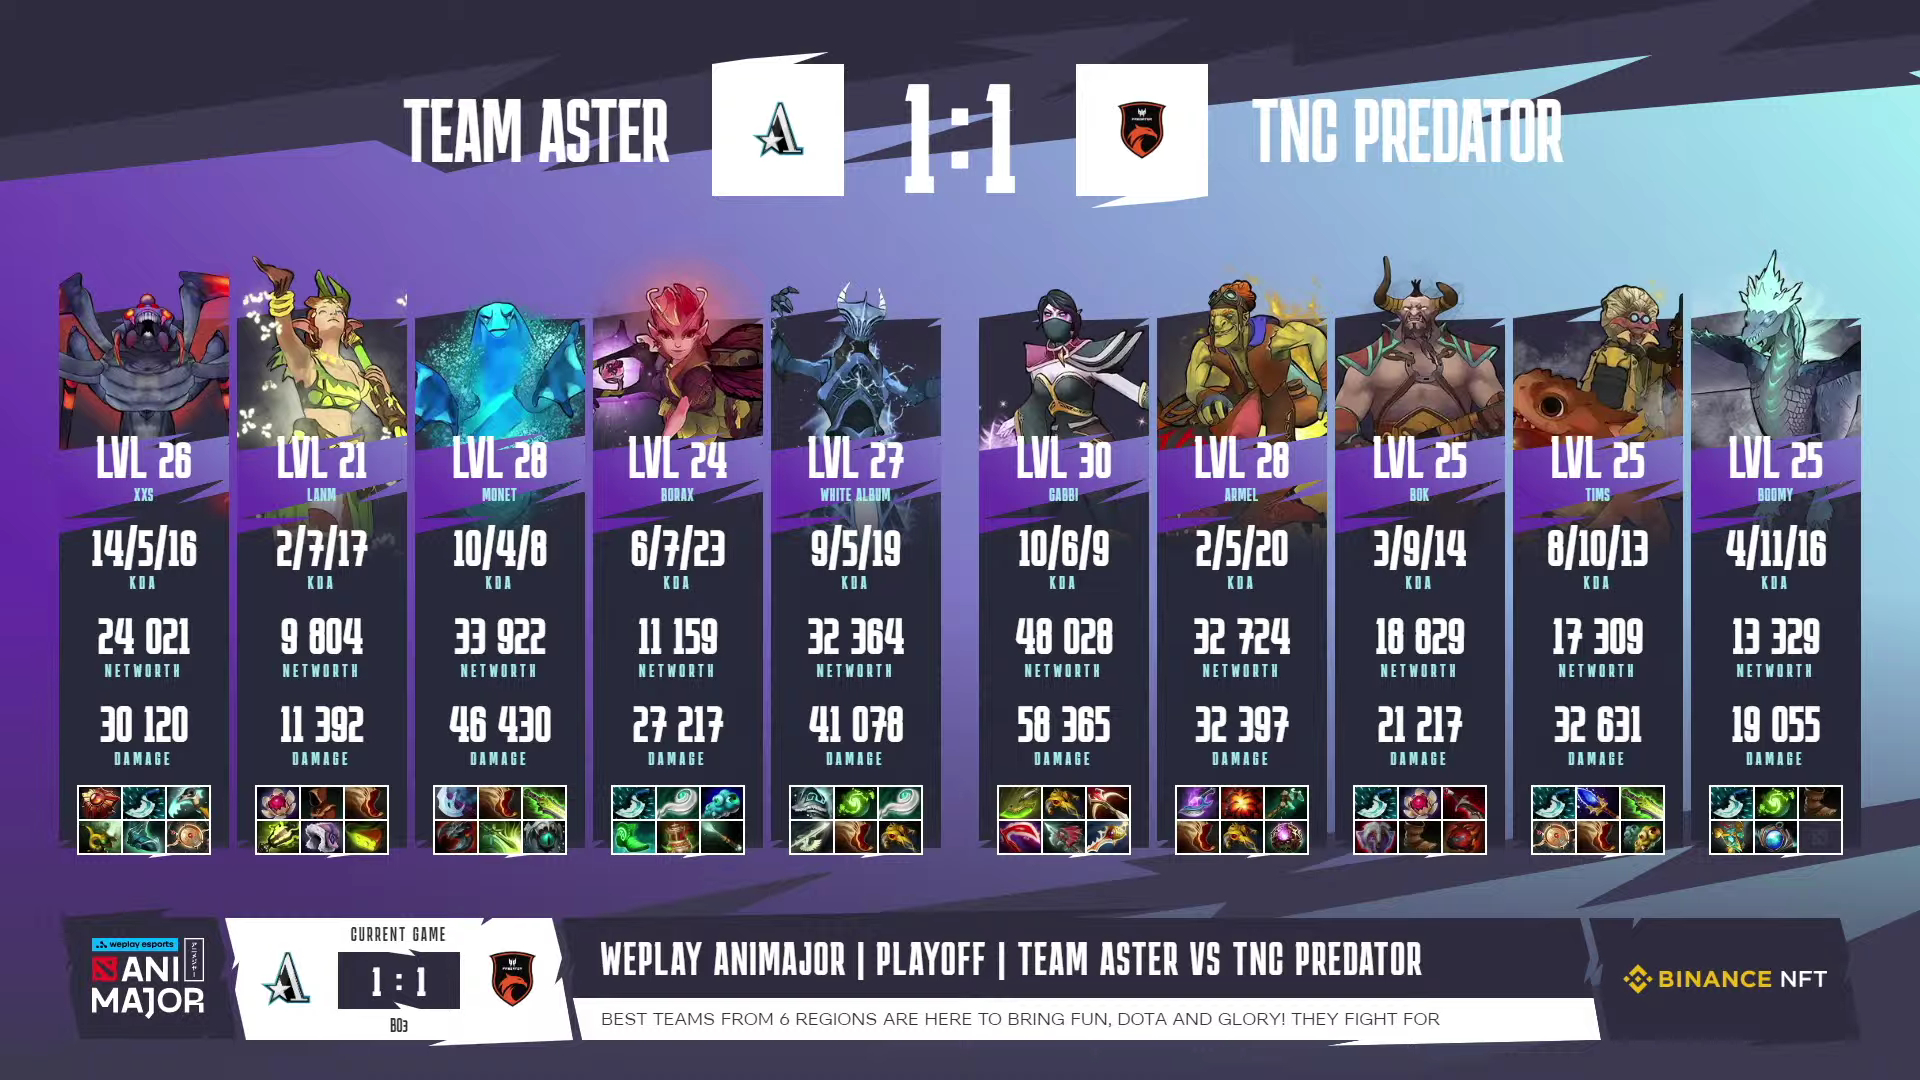 2021-WePlay-AniMajor-Lower-Bracket-TNC-def-Team-Aster-Game-2 TNC pulls off epic come-from-behind win to advance in AniMajor playoffs DOTA 2 ESports News  - philippine sports news